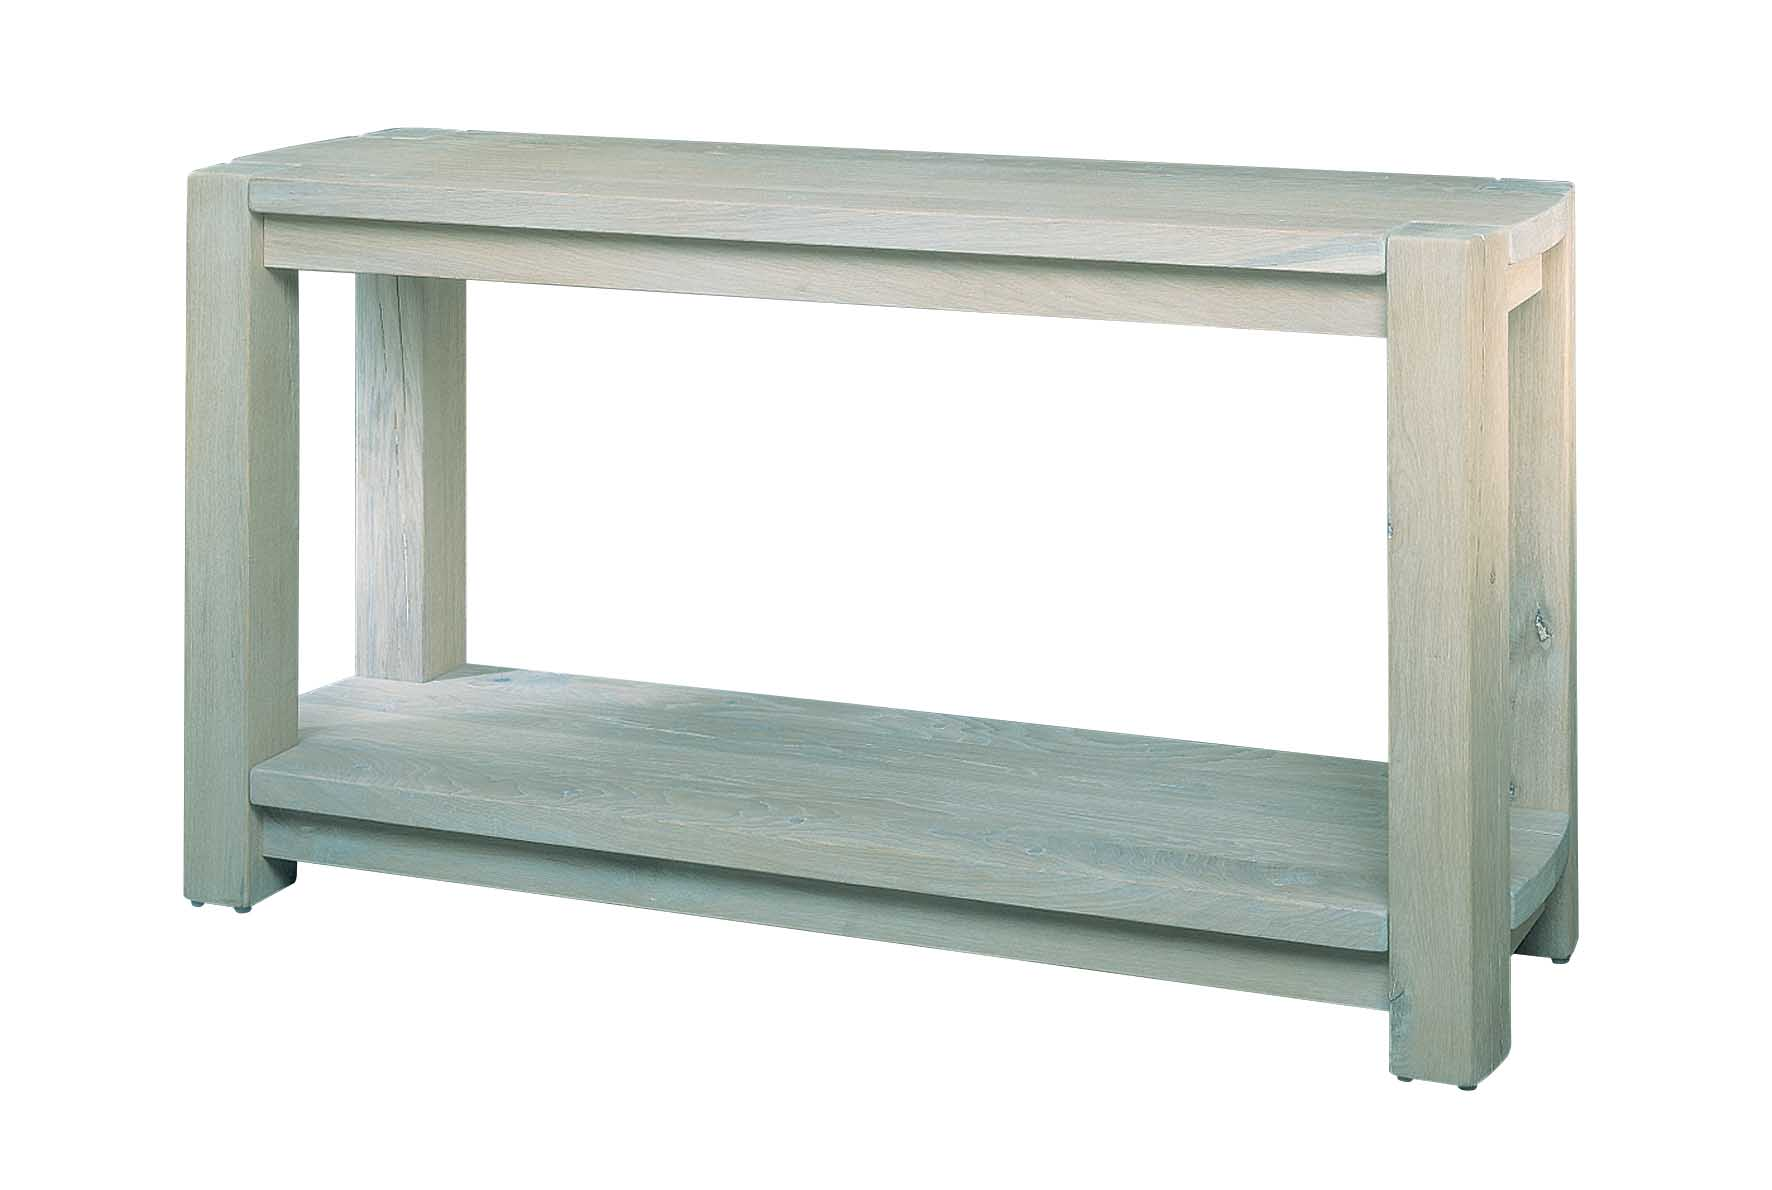 YPS027 Ypsilon Console Table + shelf_cd1G copy.jpg_ce373ffade9c30719ee856e33d36654a242.jpg